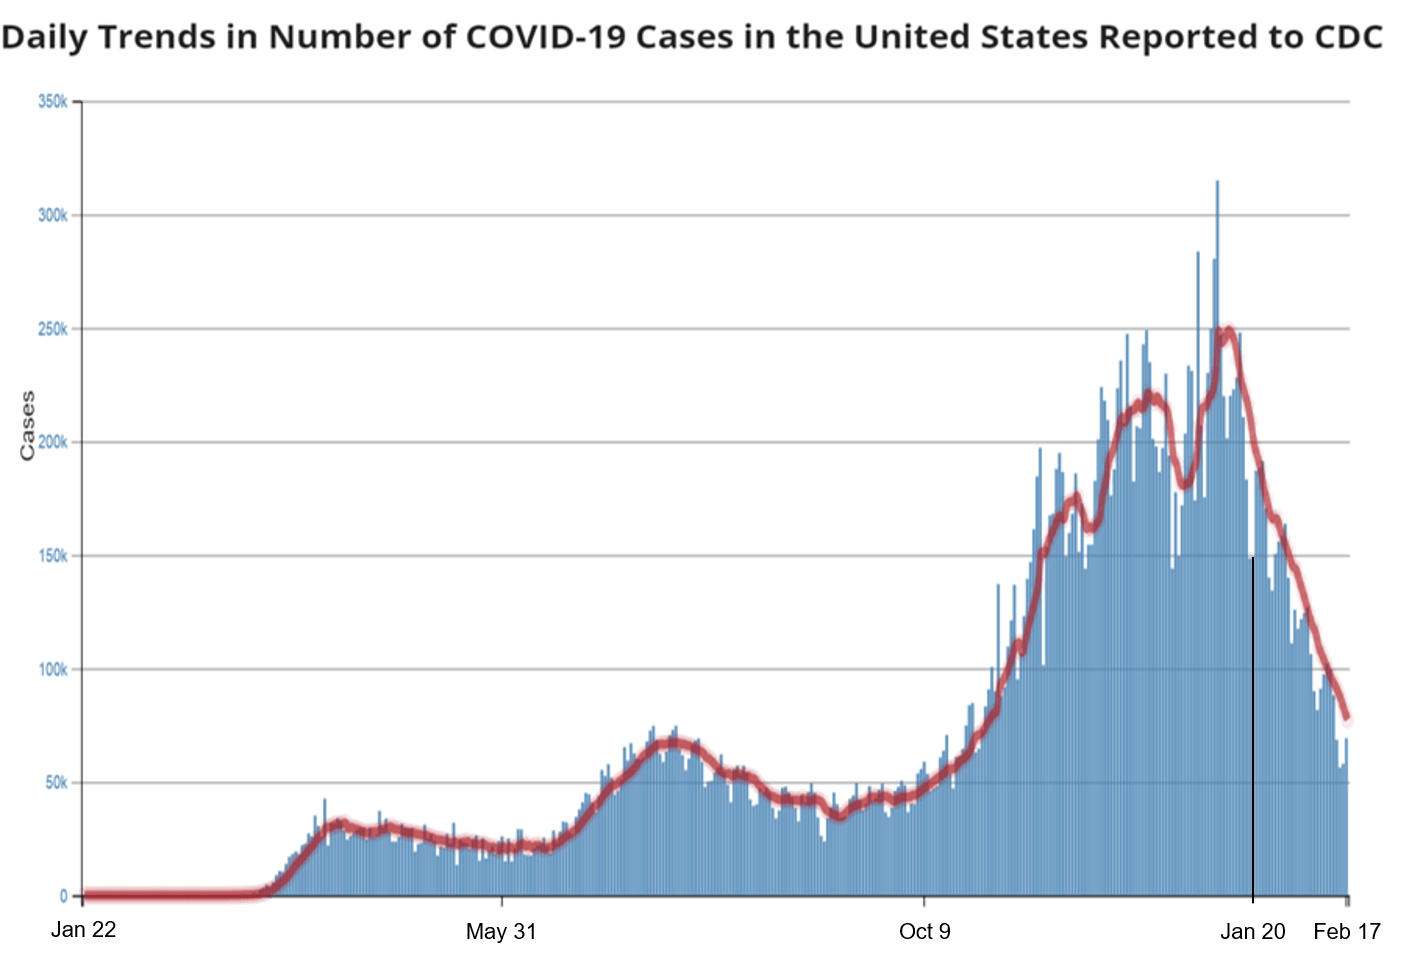 The number of new COVID-19 cases fell and daily vaccination increased in early 2021, but no indication that it was due to US president Biden taking office - Health Feedback